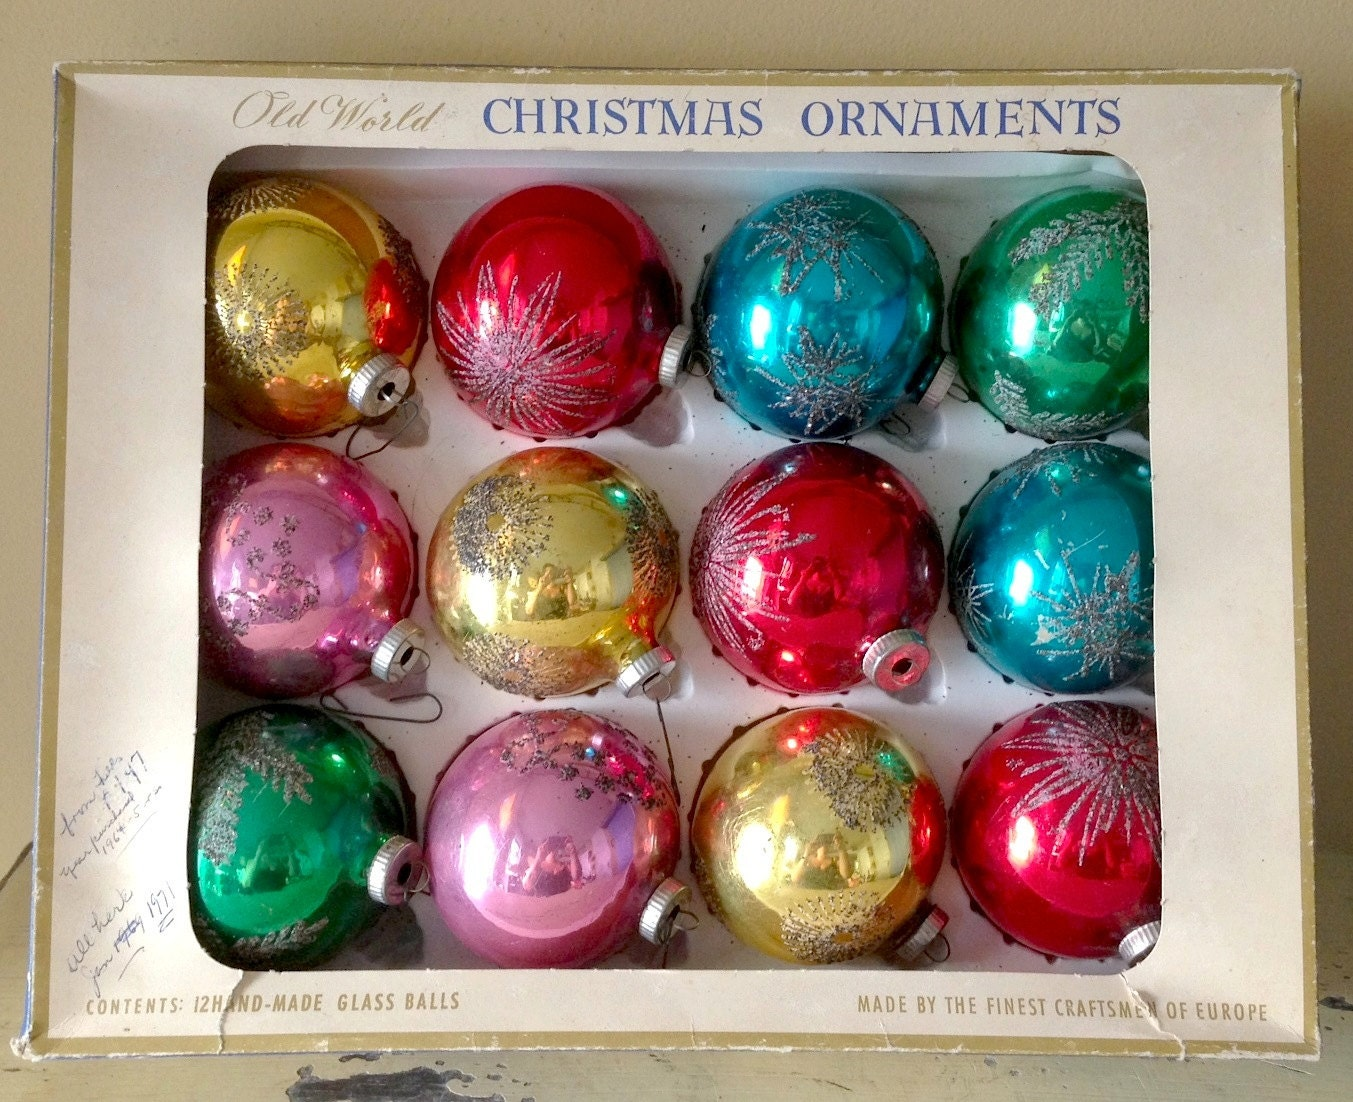 Starburst Christmas Ornaments